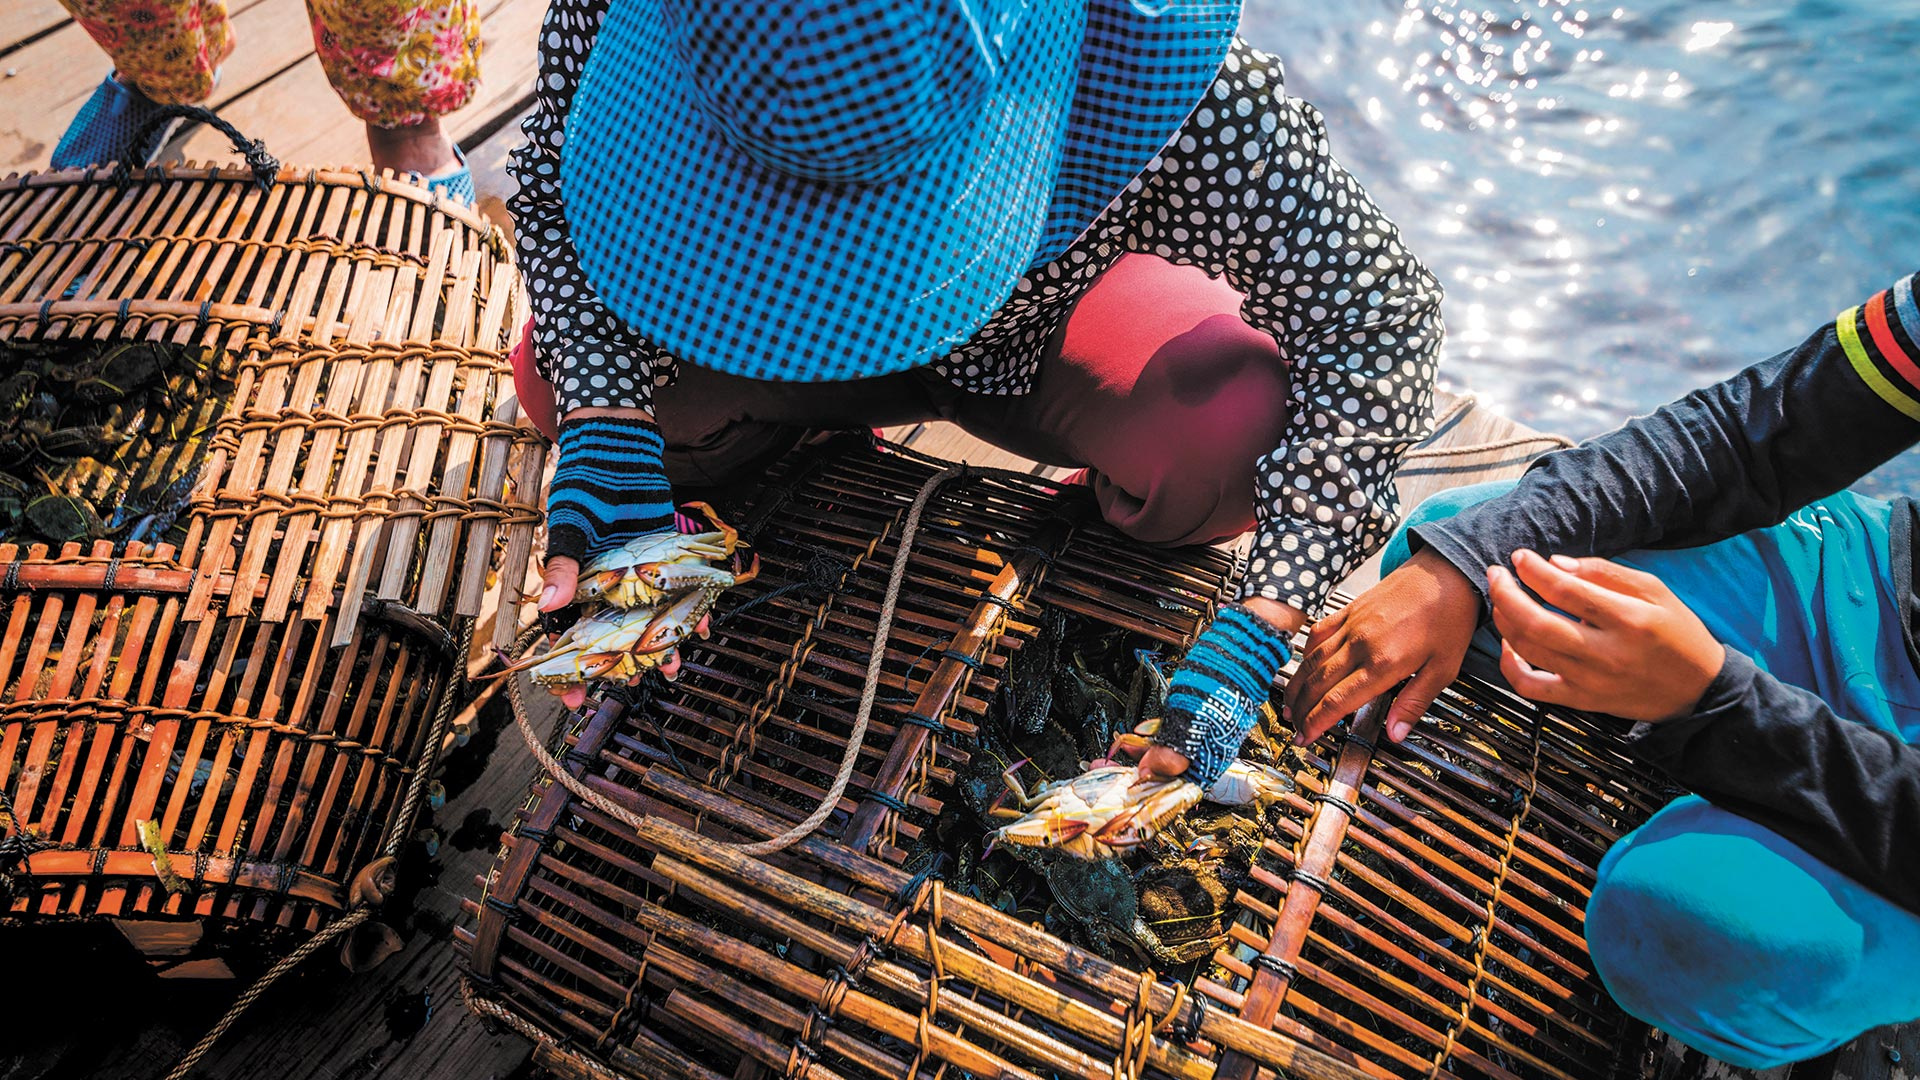 Fishermen empty their crab traps every morning in Kep. Photograph by Ivoha / Alamy